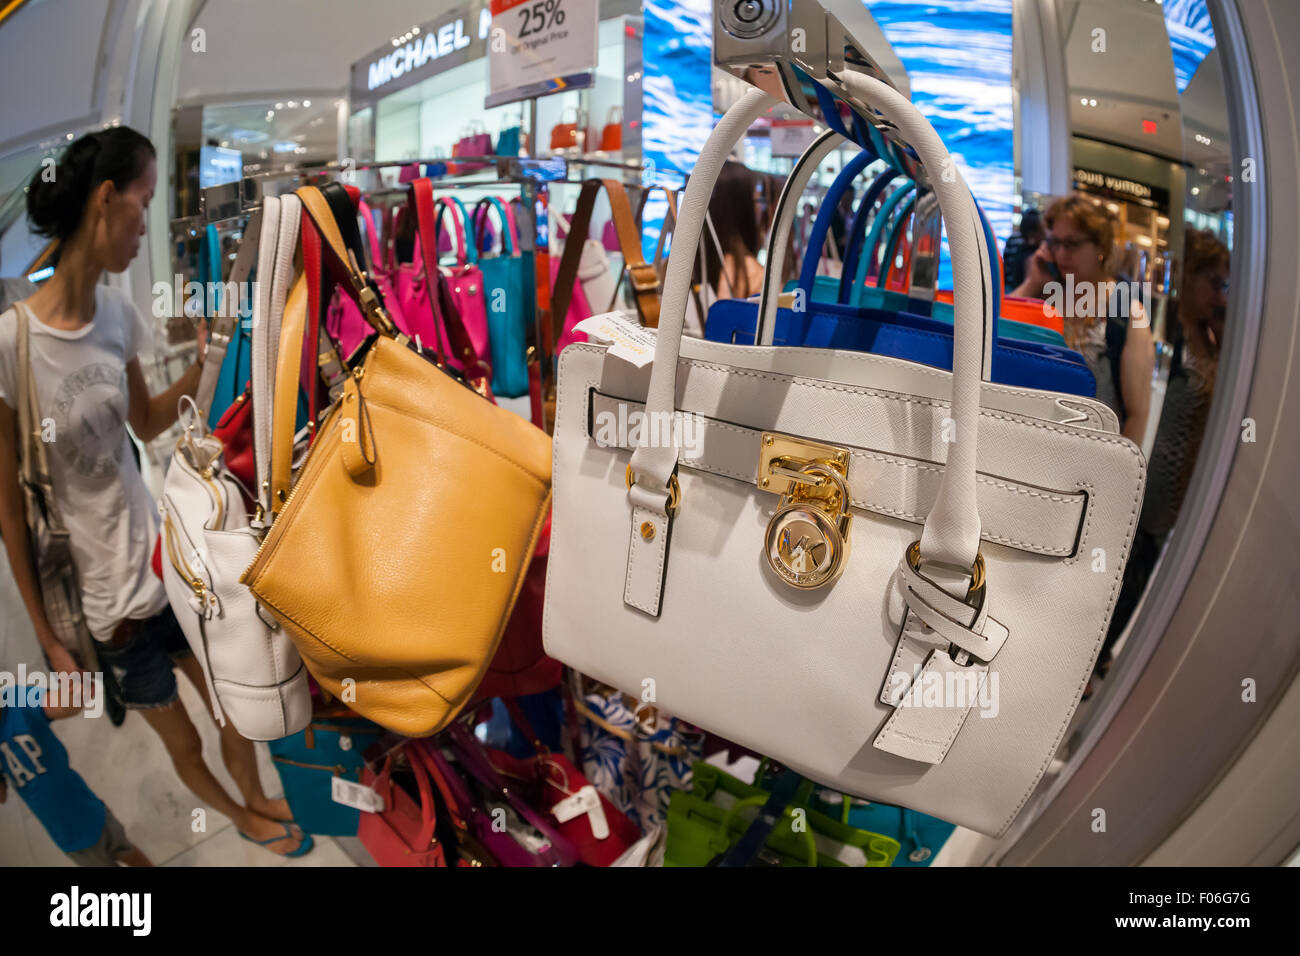 4546c879f545 Handbags on display at the Michael Kors boutique within Macy s in New York  on Tuesday